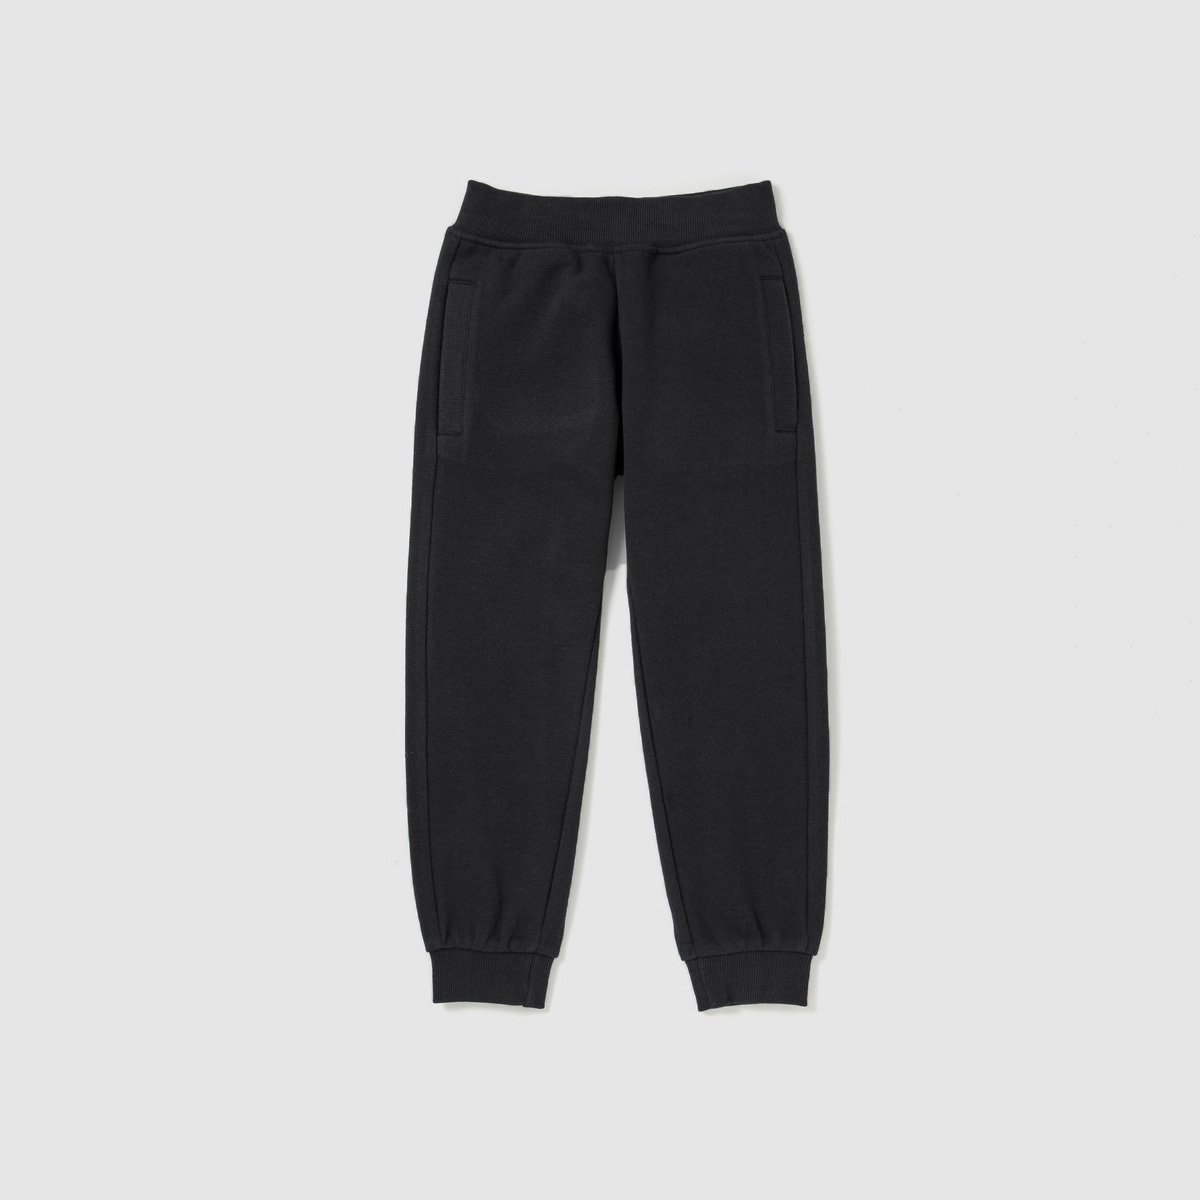 KC Kid's 19-20A20 Terry Jogger Pants Boy's Trousers SRK Black 1/2 Years